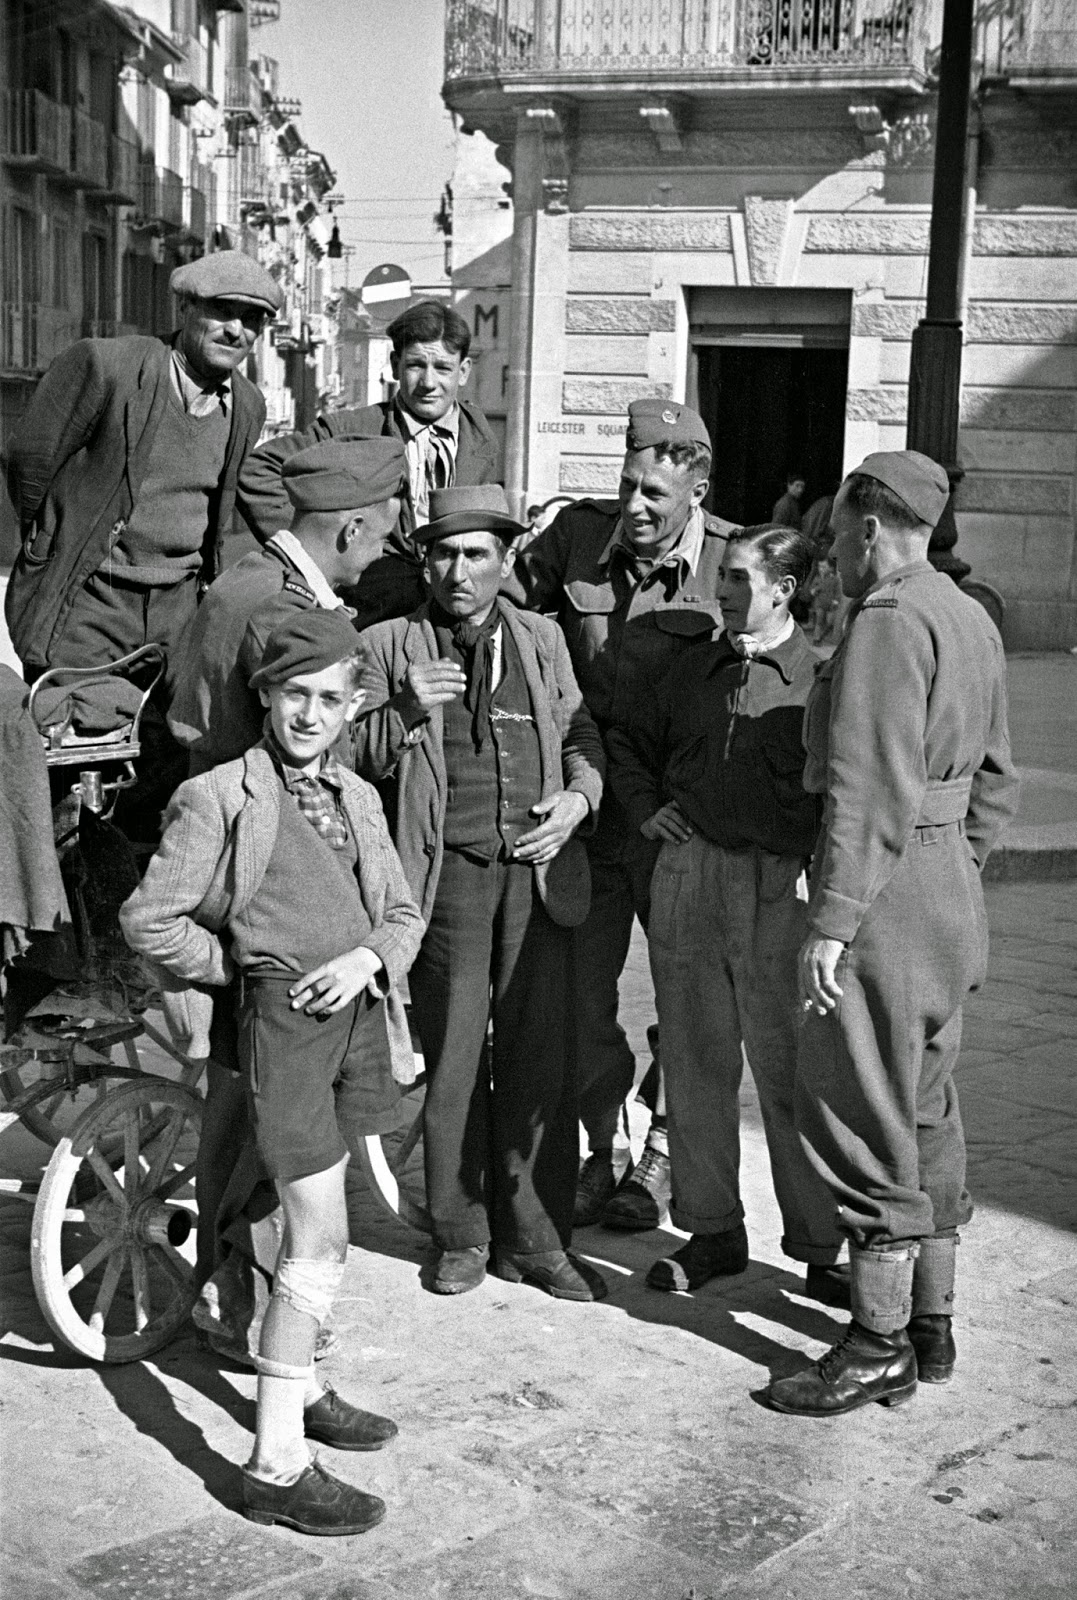 campobasso single girls New zealand troops on leave meet a gharri driver for sightseeing in campobasso, italy, 3 may 1944 women of campobasso, italy, still use the old roman.